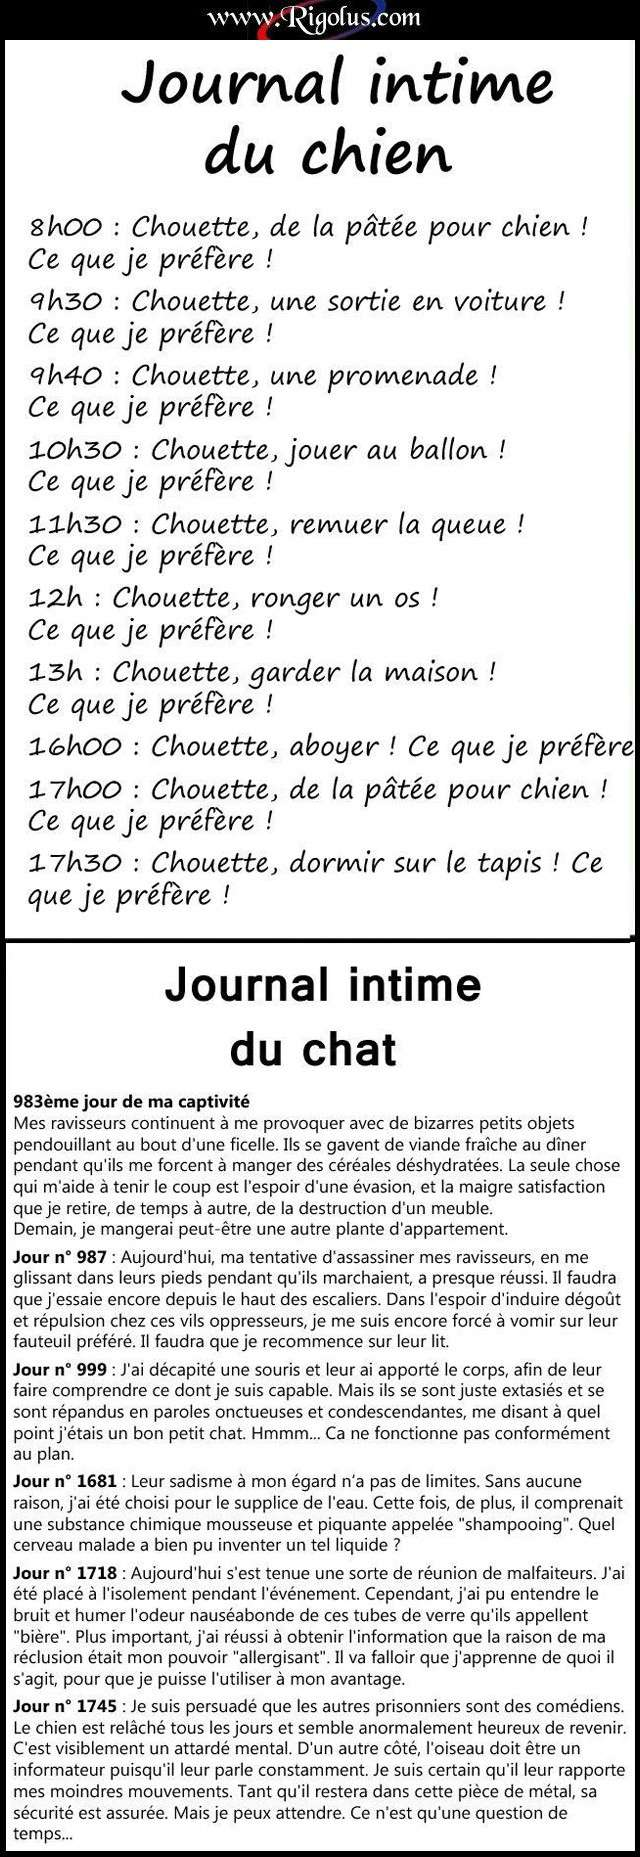 Journal intime du chien et du chat for Salon du chien et chat